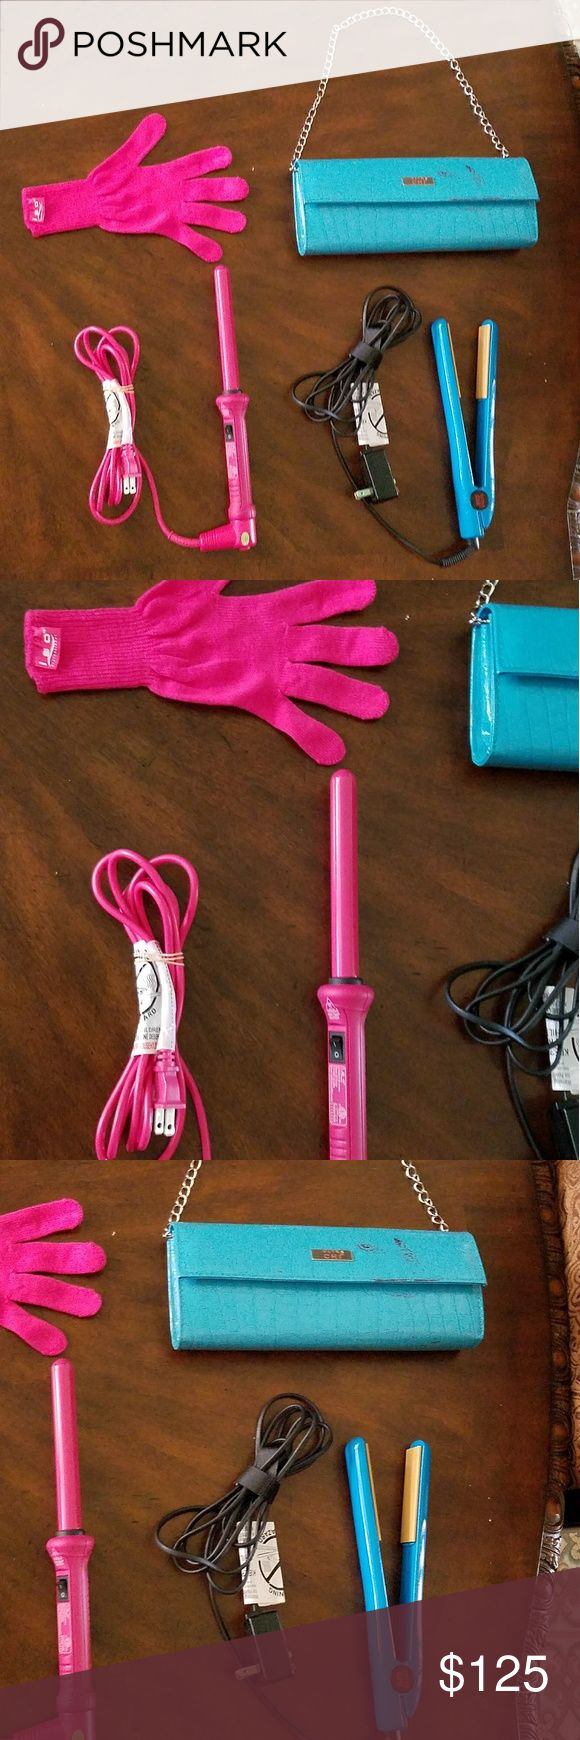 Chi Hair Straightener & Case and Iso Tools Wand Both the Ultra Chi Hair Straightener and Iso Beauty Tools Curling Wand has been used a few times. The glove of the wand has never been used. The matching bag case for the Ultra Chi Hair Straightener has been stained by my red hair dryer while in storage in my drawer. That is the only bad looking thing on these items. However, the red paint stain do not affect the straightener itself, nor the purpose of the carrying case. I do not know how that…